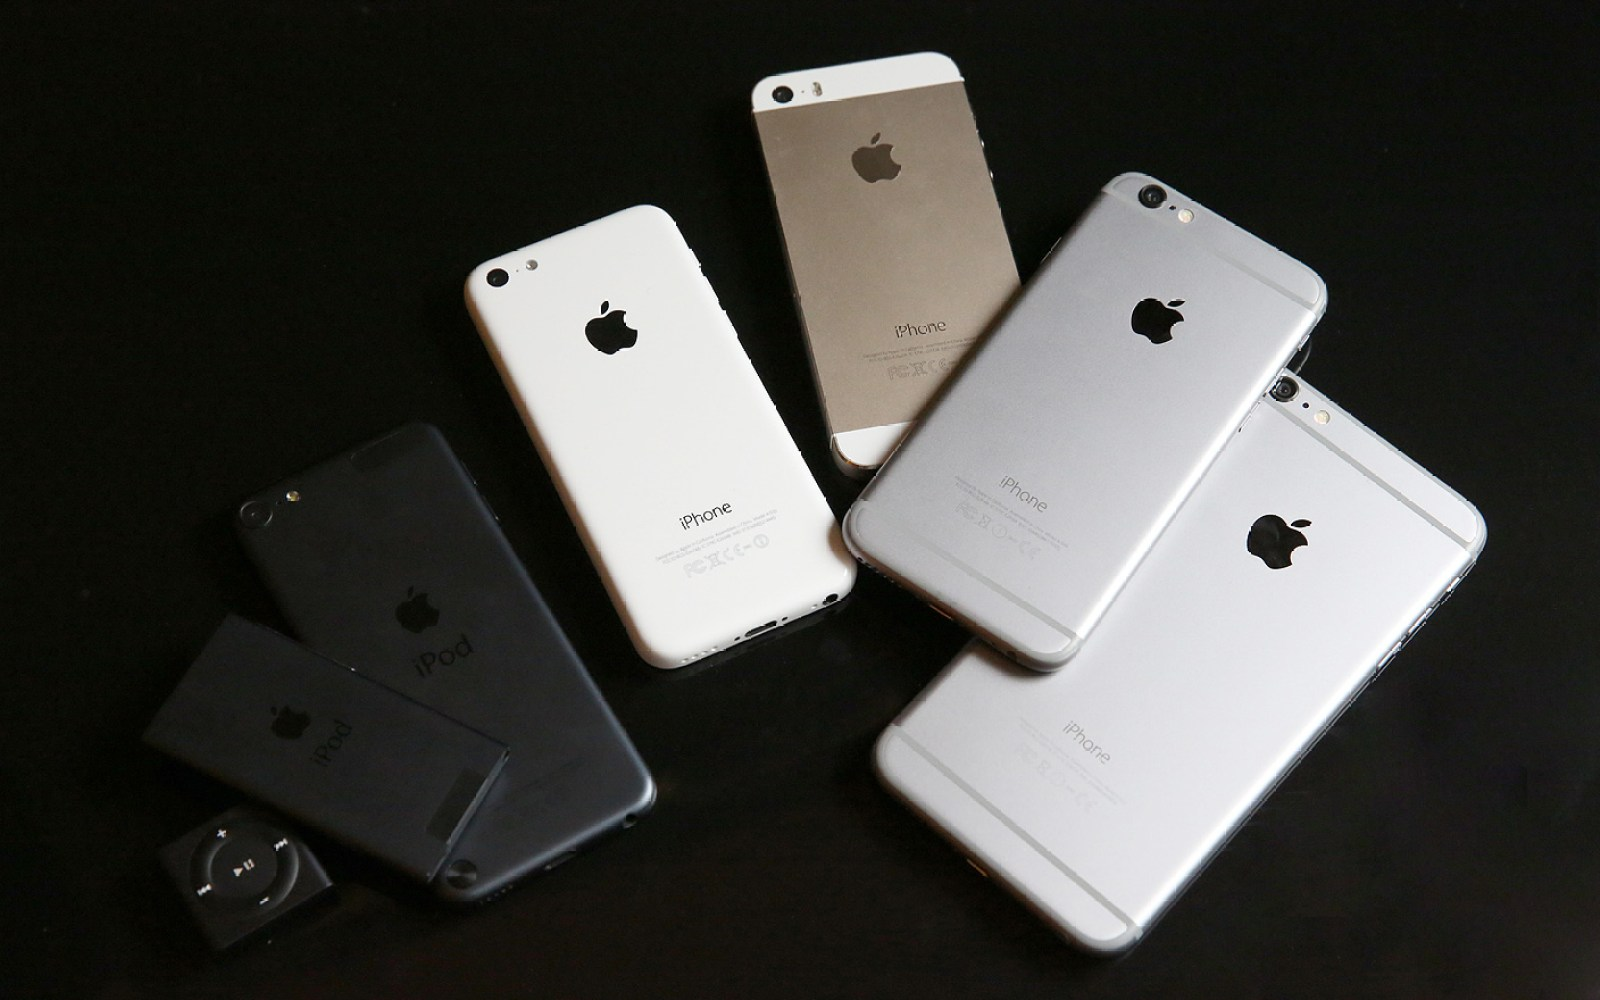 9to5 Guide: Hello, new iPhone / iPod owner! Here are the best accessories to buy right away